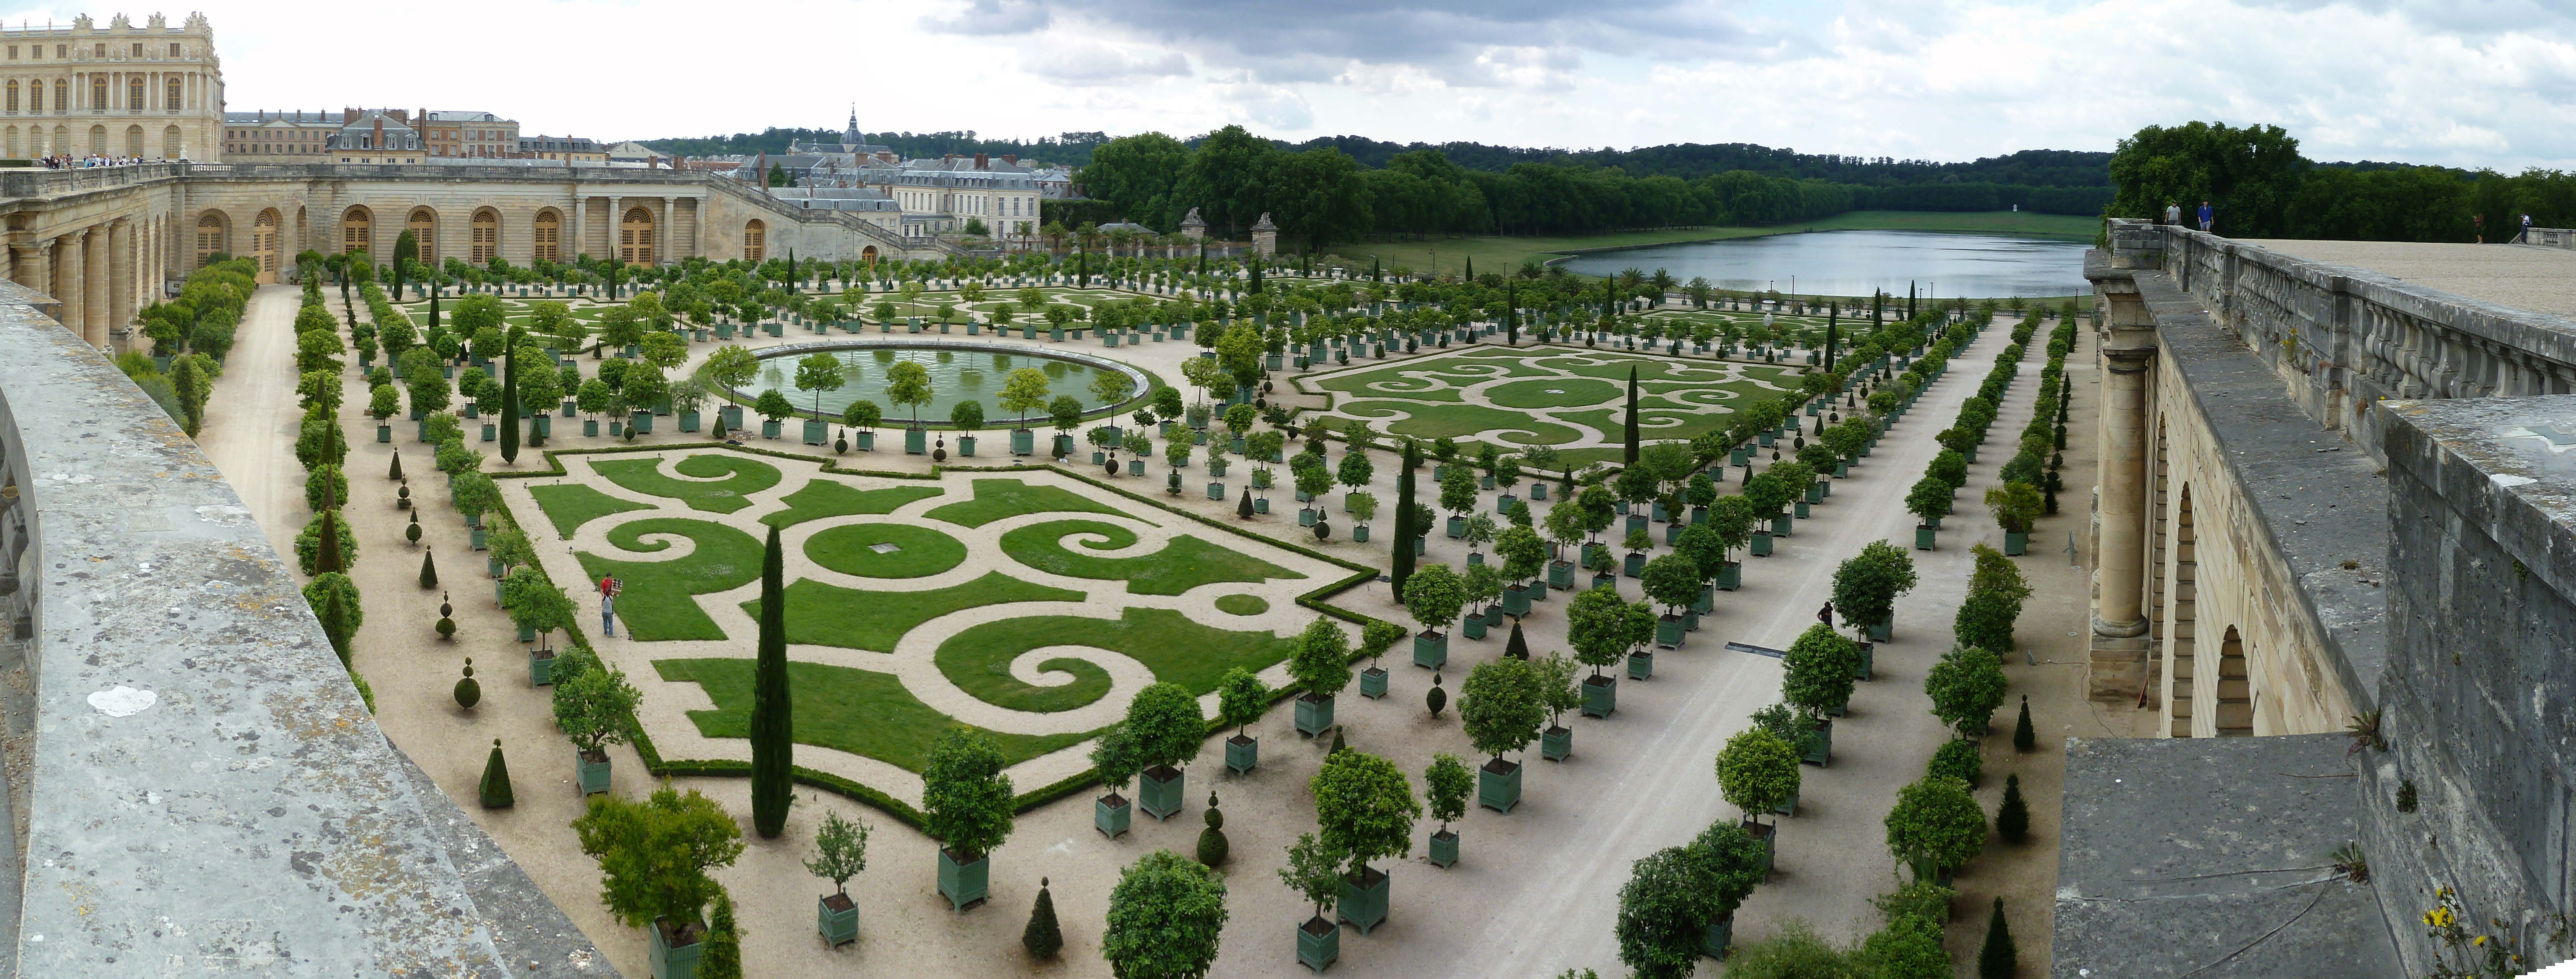 ... French Gardens From The Roof By Ultimalitho